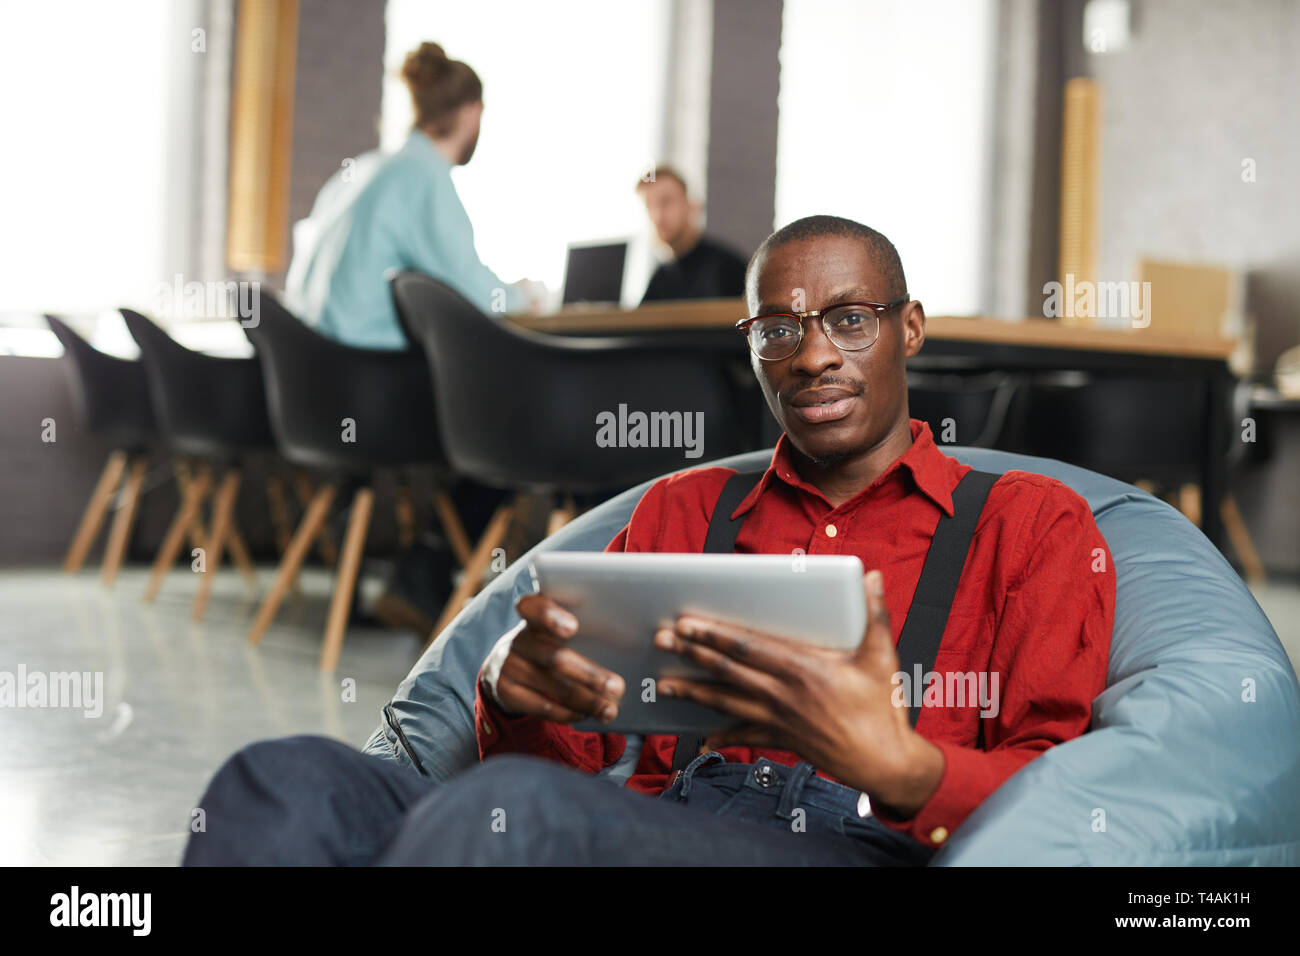 African -American Businessman Lounging in Office - Stock Image